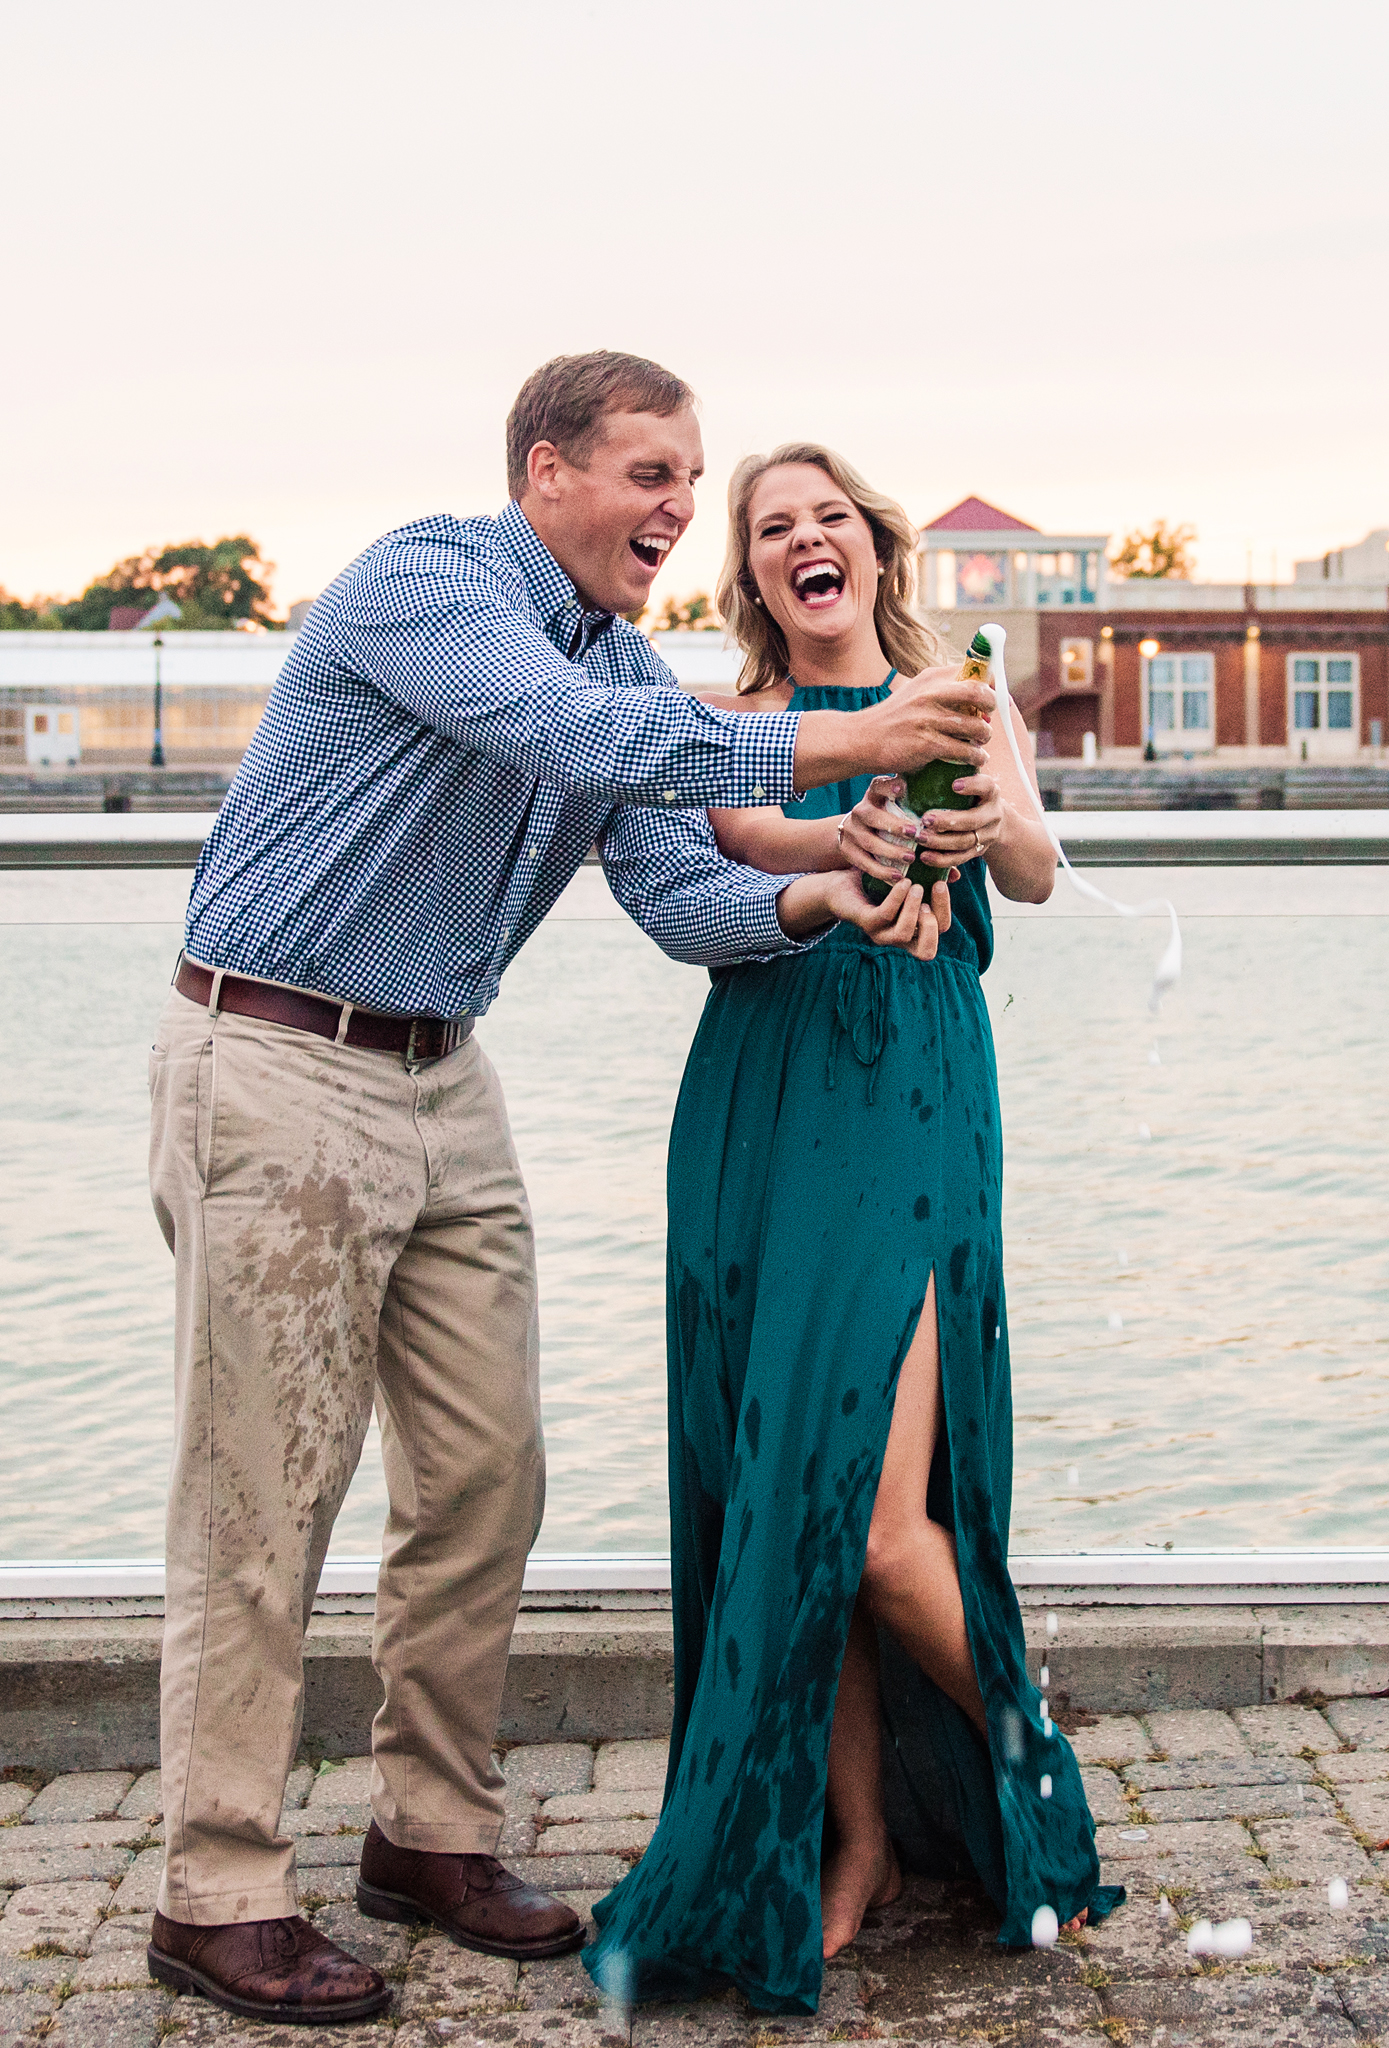 George_Eastman_House_Rochester_Yacht_Club_Rochester_Engagement_Session_JILL_STUDIO_Rochester_NY_Photographer_DSC_8295.jpg